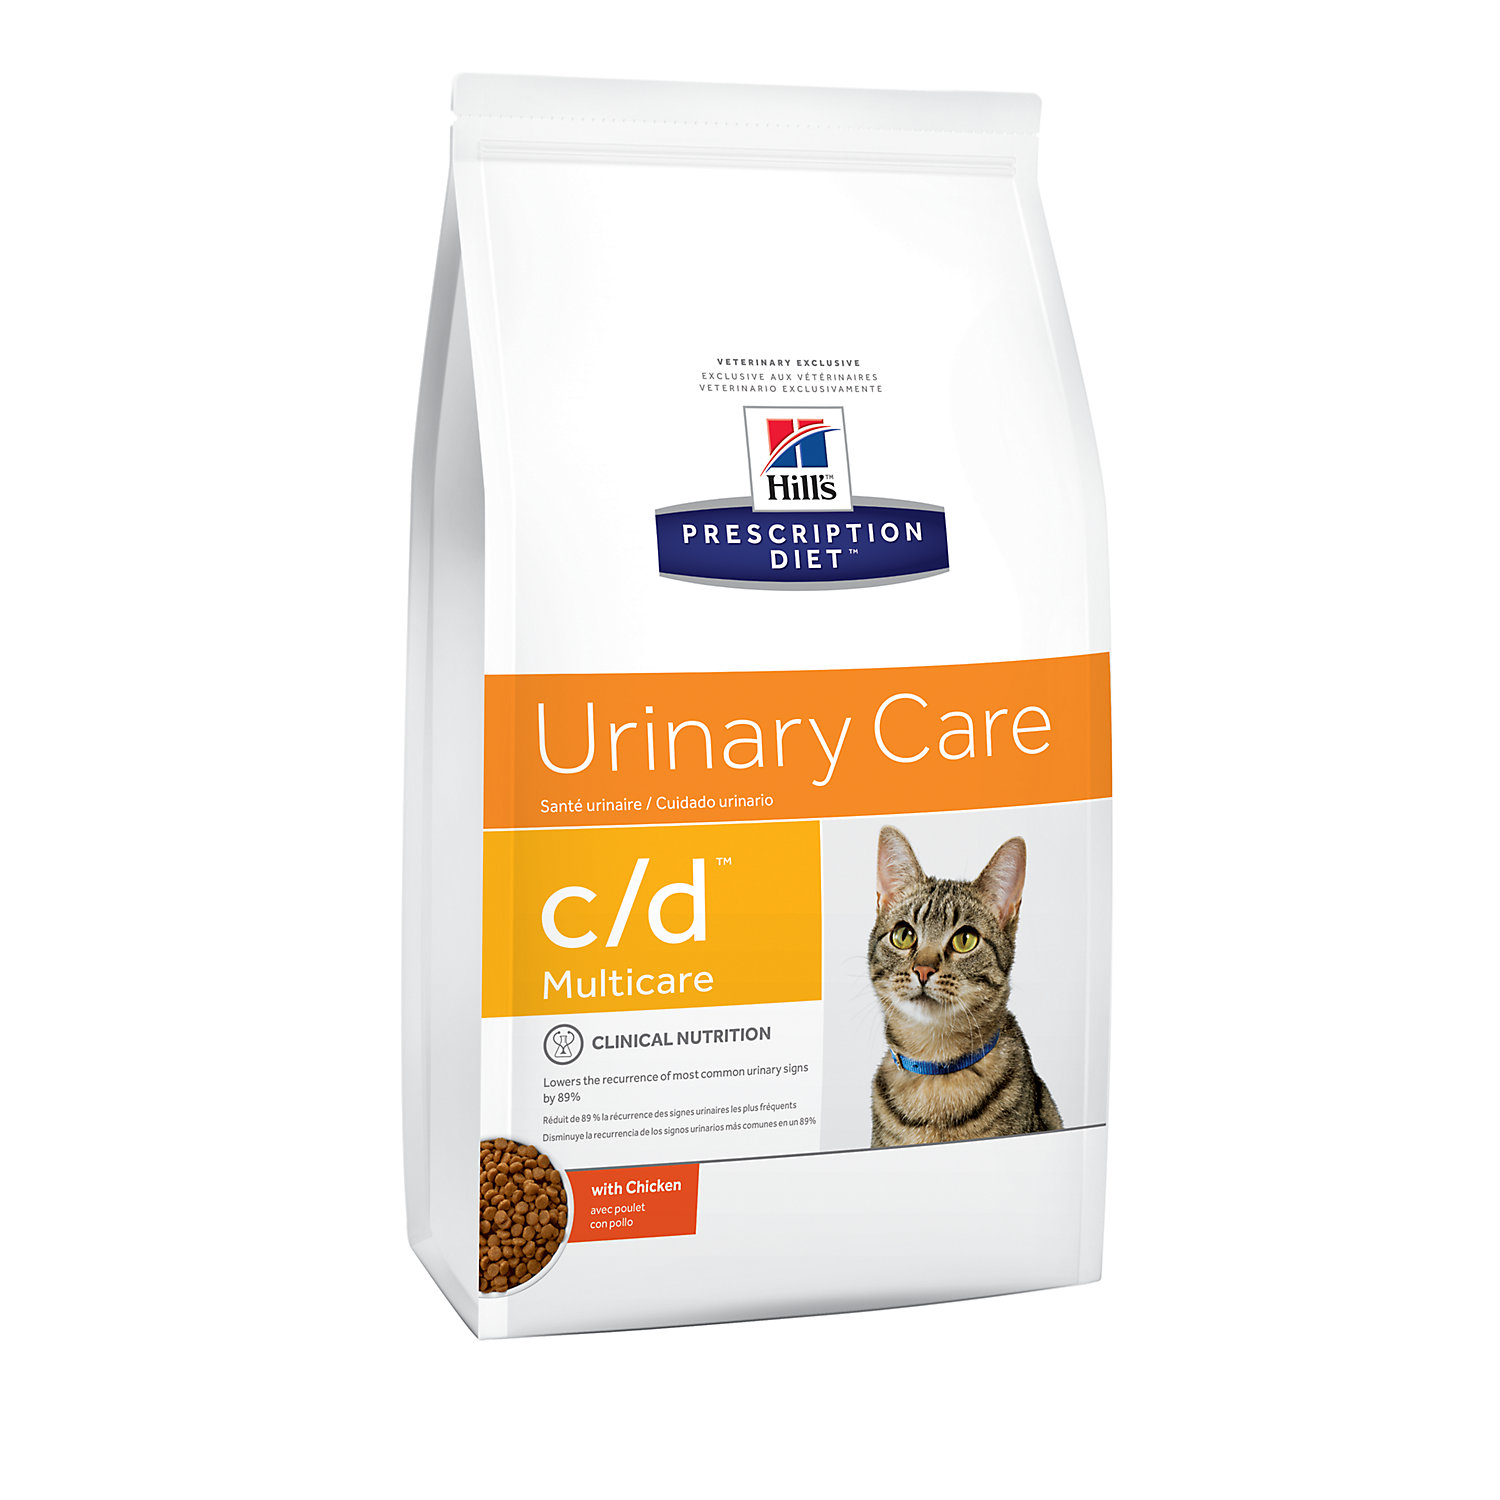 Hills Prescription Diet cd Multicare Urinary Care with Chicken Dry Cat Food 17.6 lbs. Bag